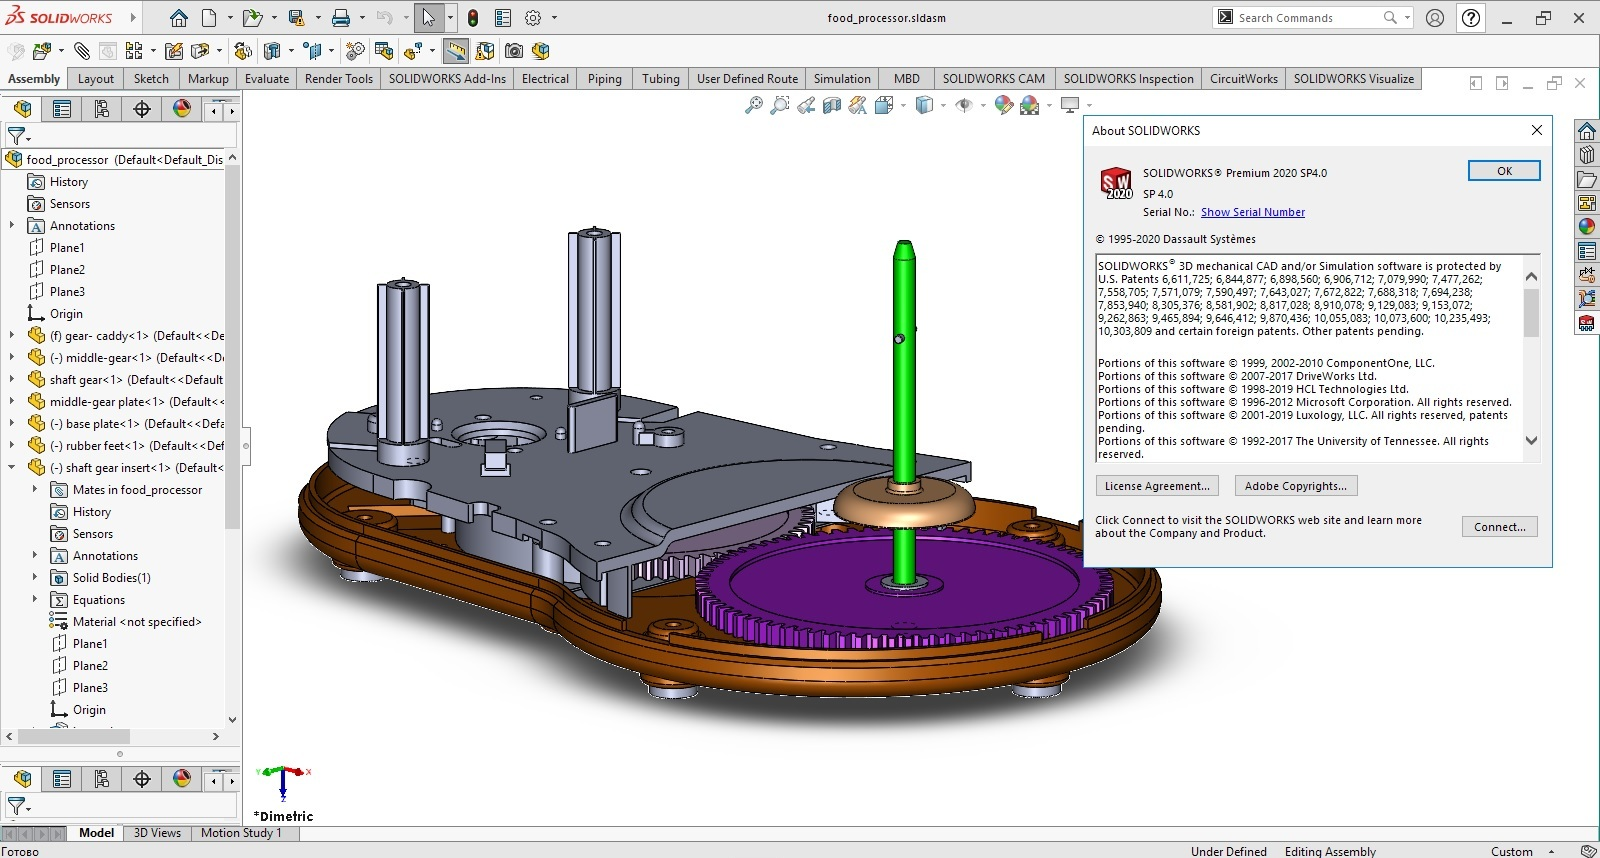 Working with SolidWorks 2020 SP4.0 Premium full license